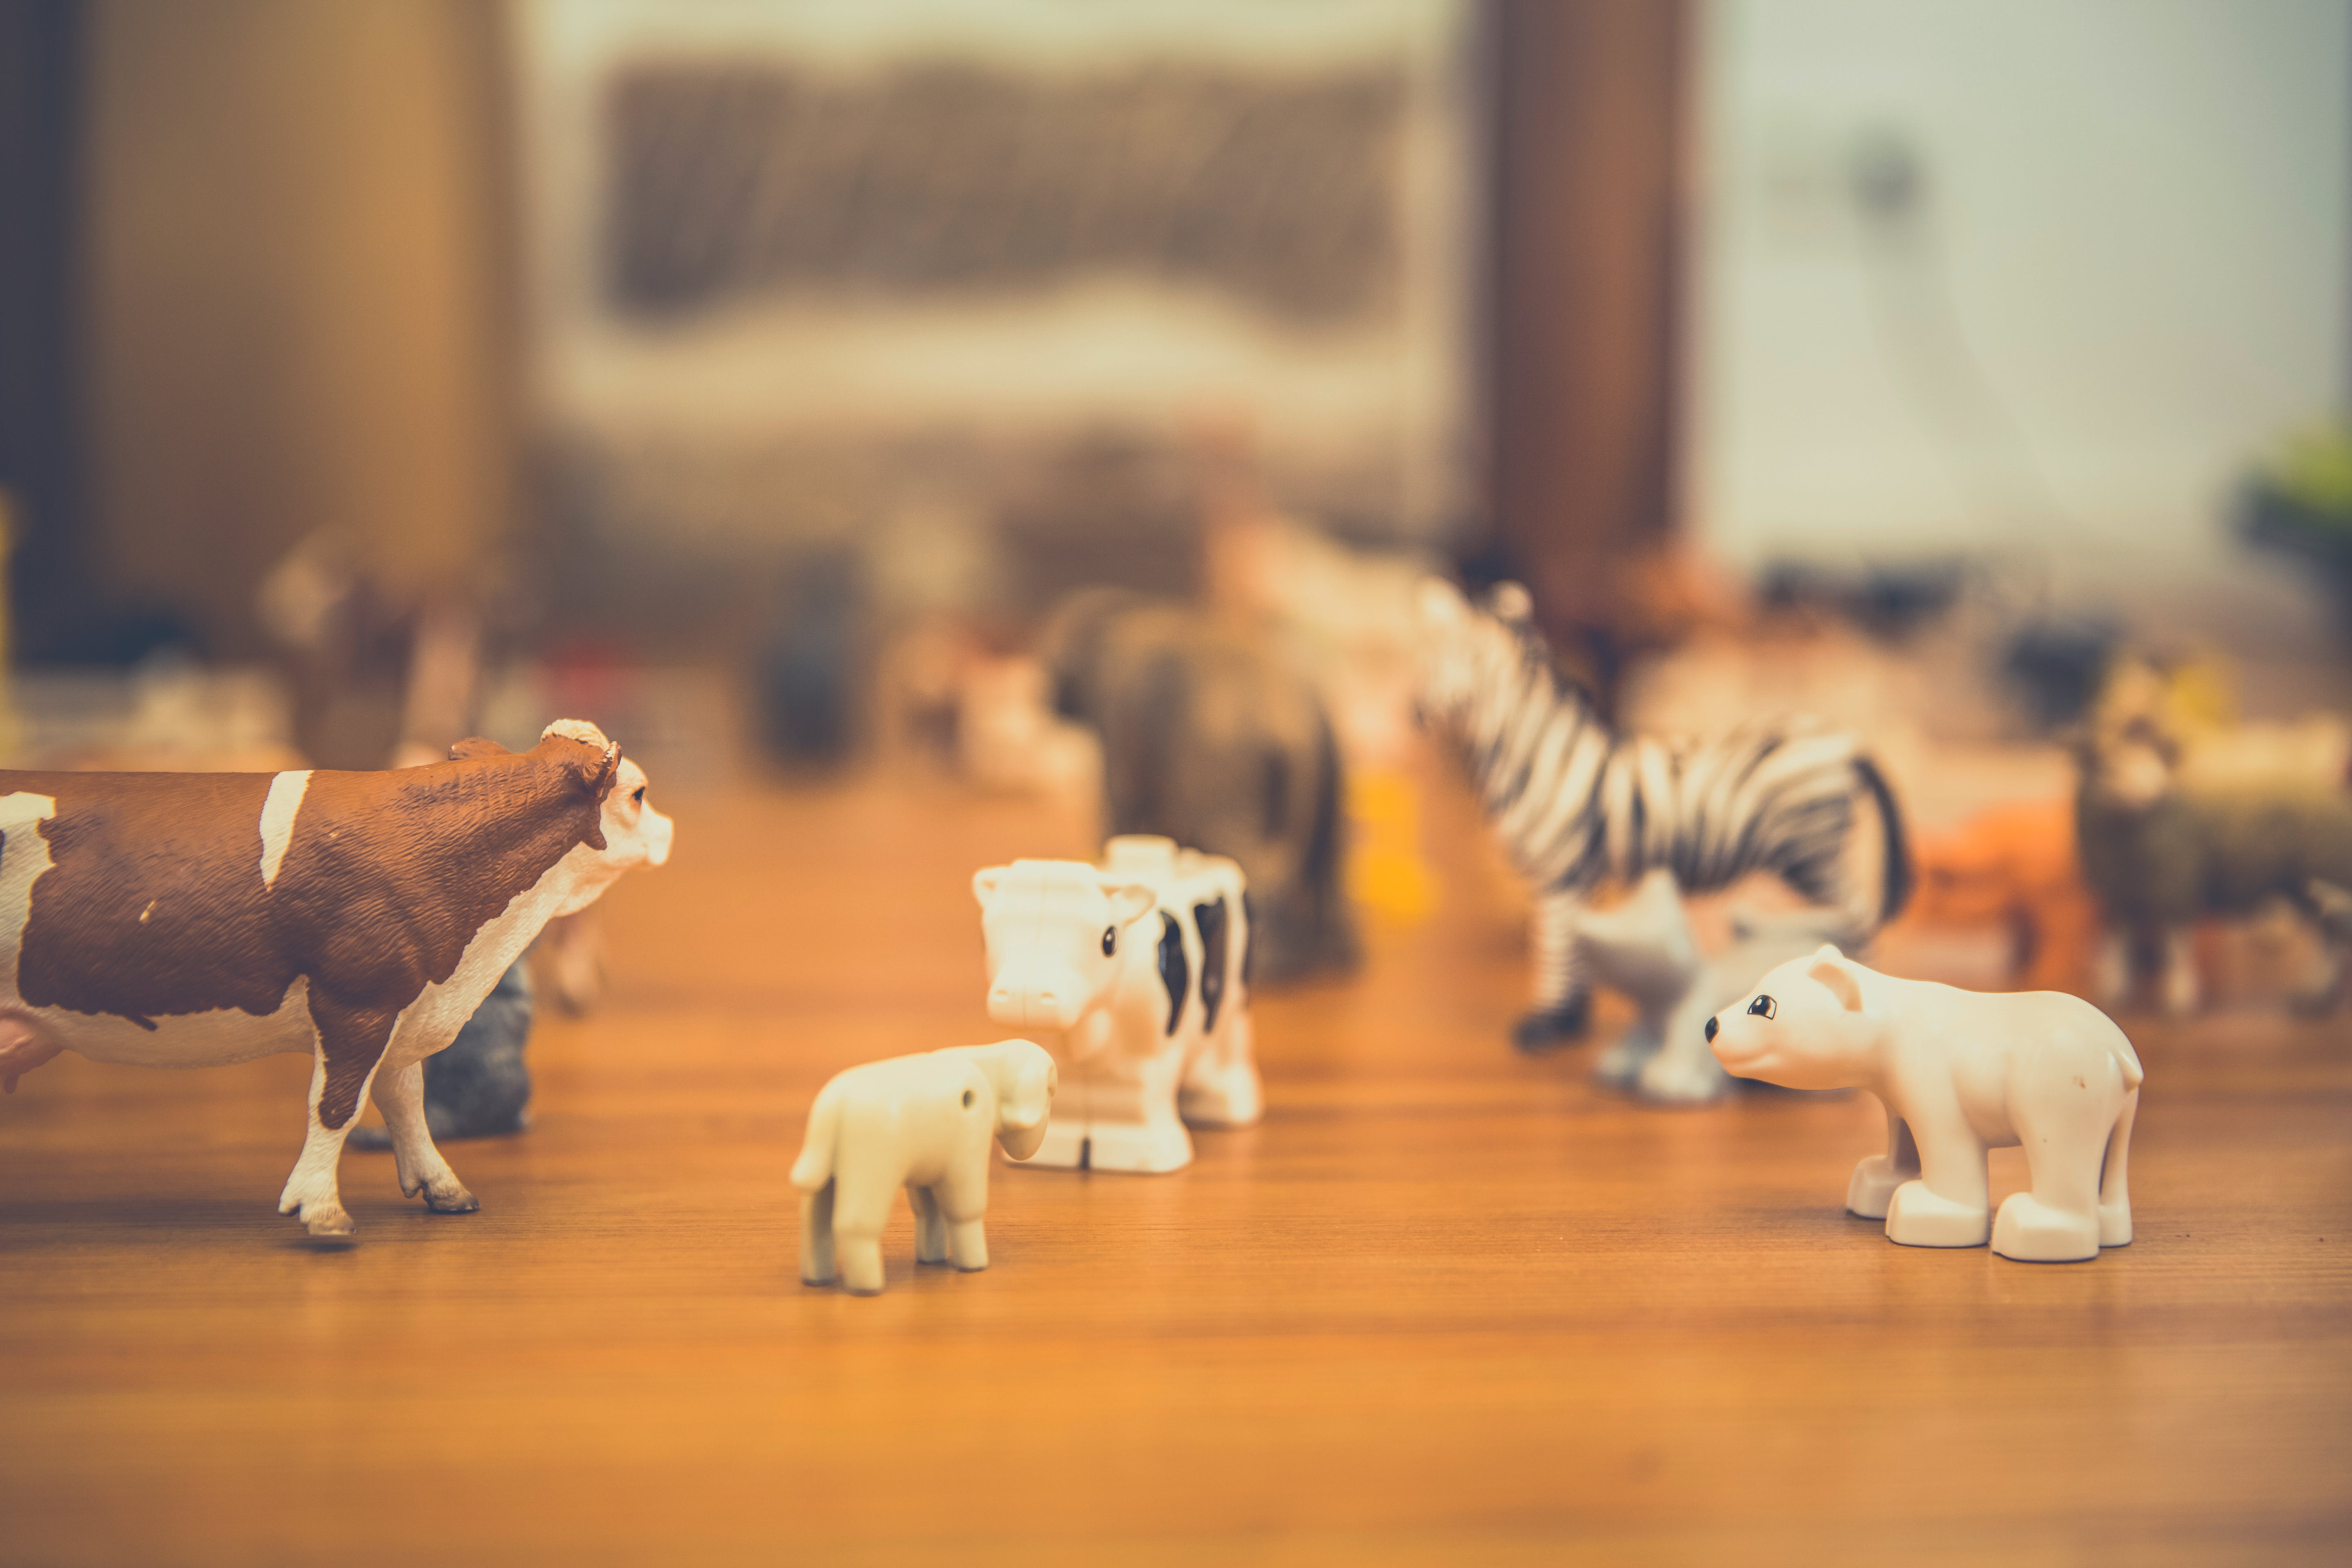 Free stock photo of animals, childhood, group, toy